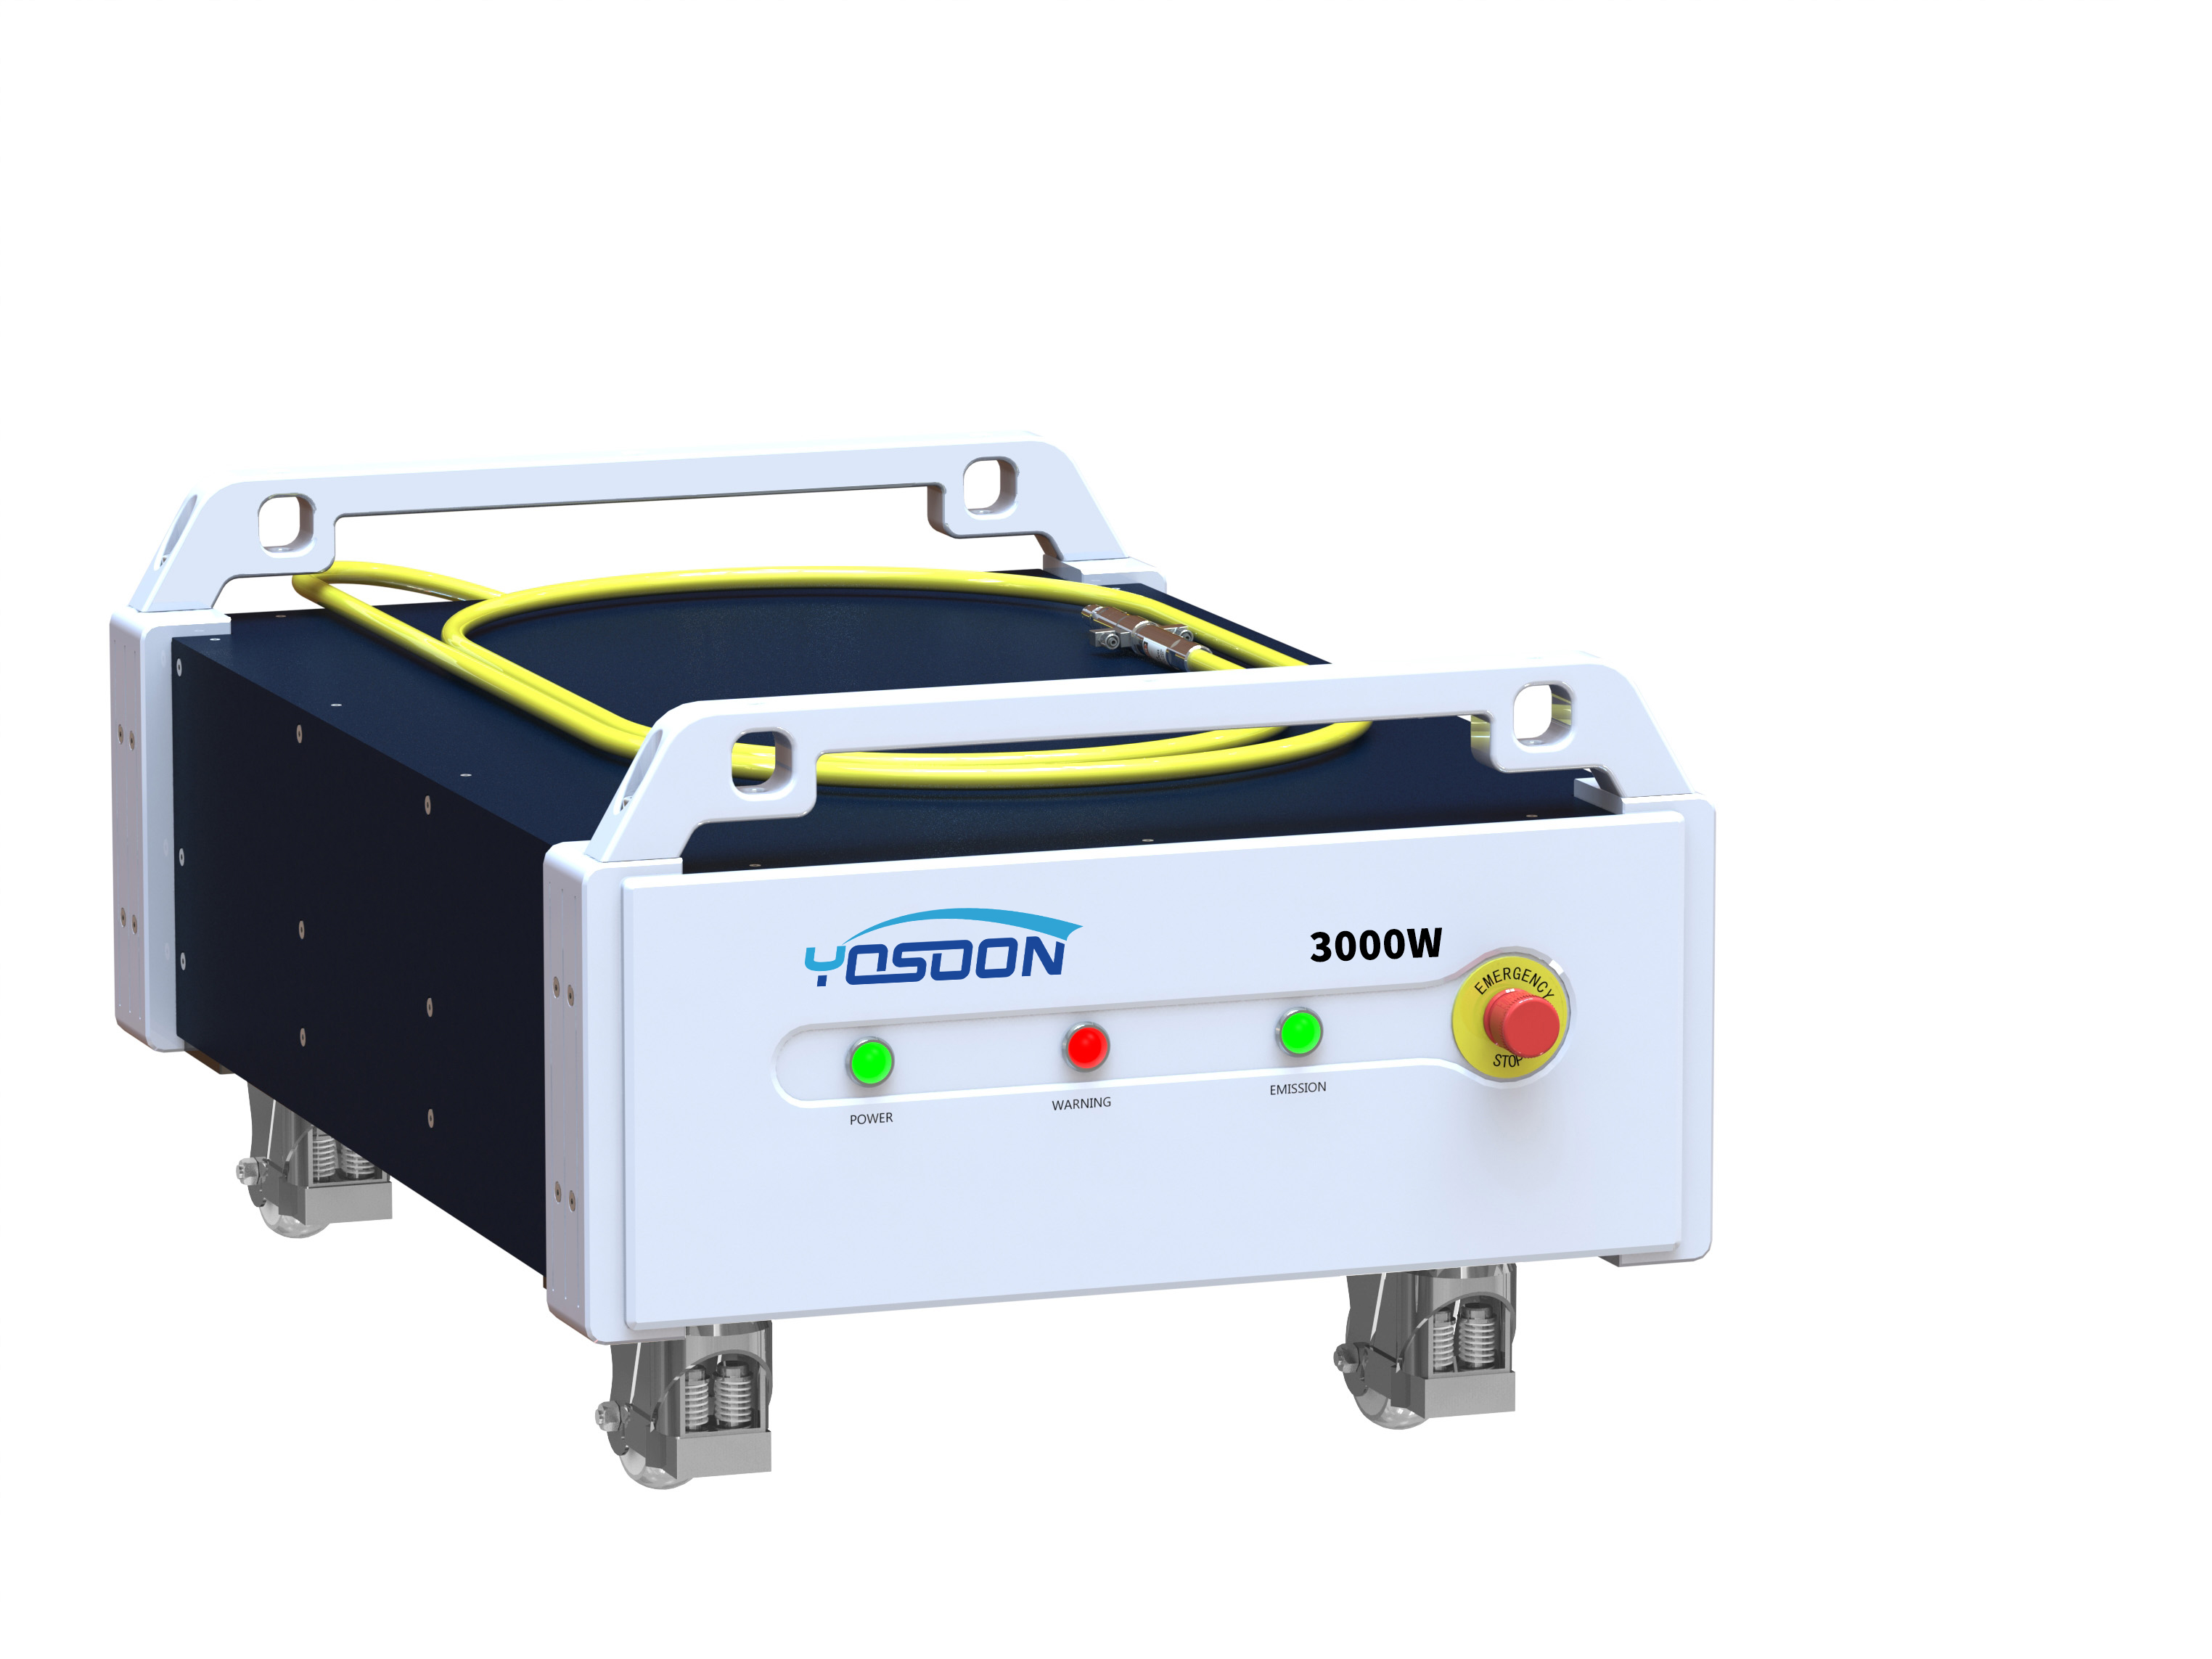 High power continuous fiber laser -3000W